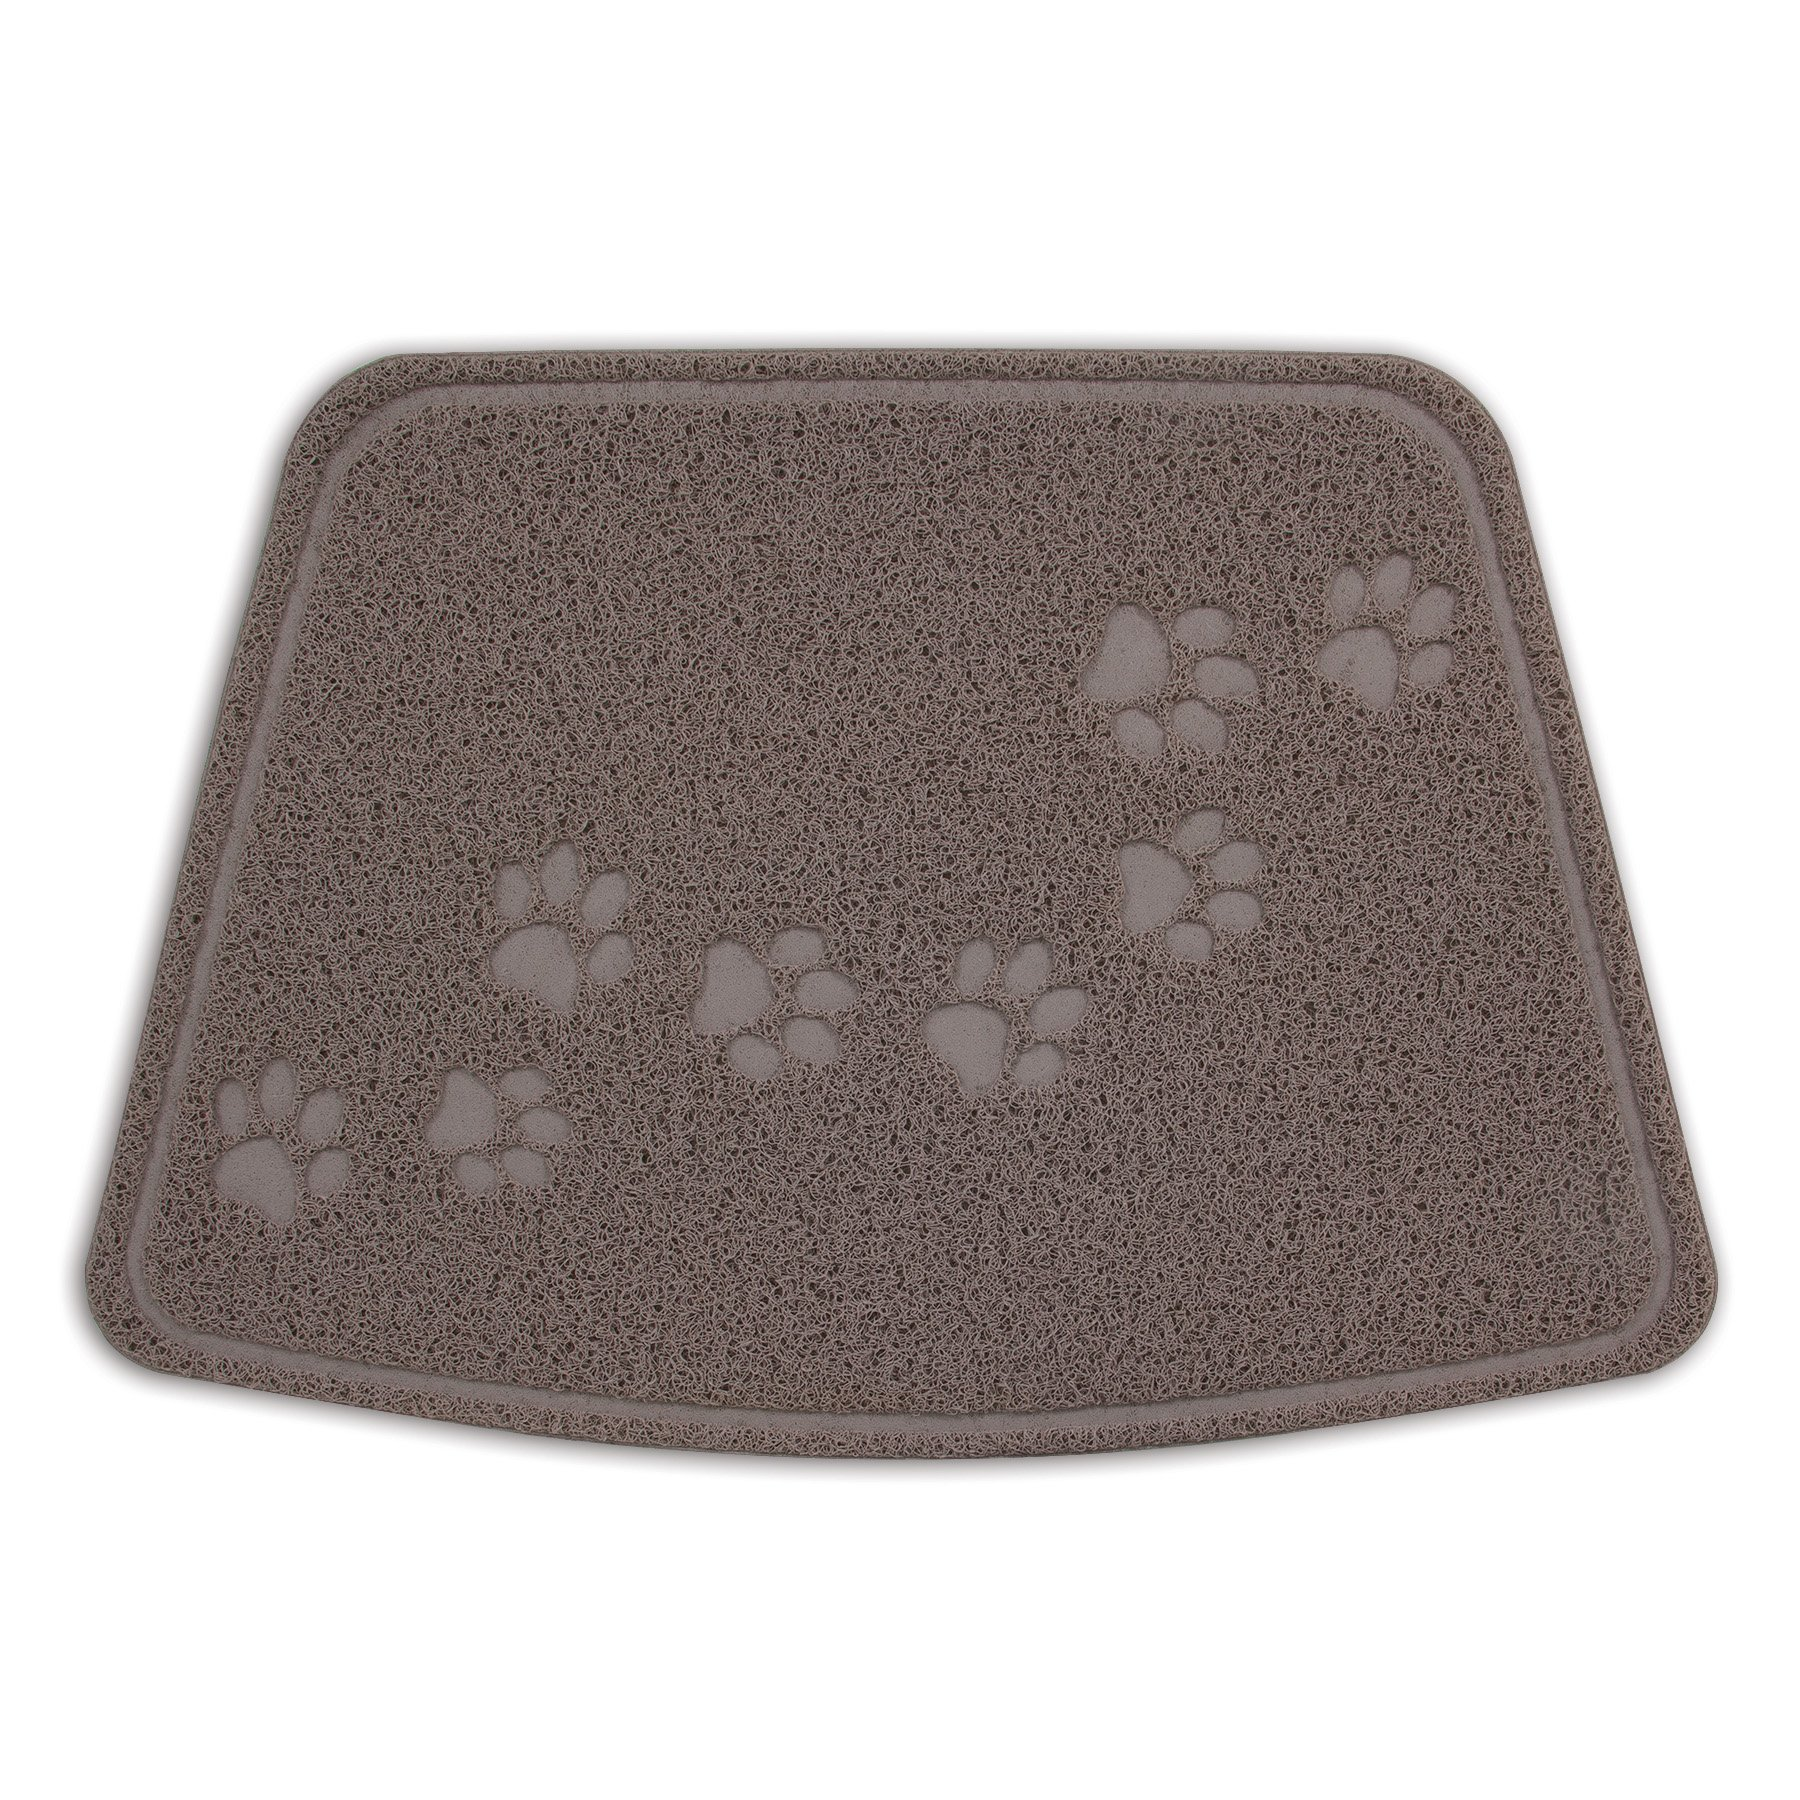 Petmate Arm & Hammer Wedge Shape Litter Mat with Paw Design by Petmate